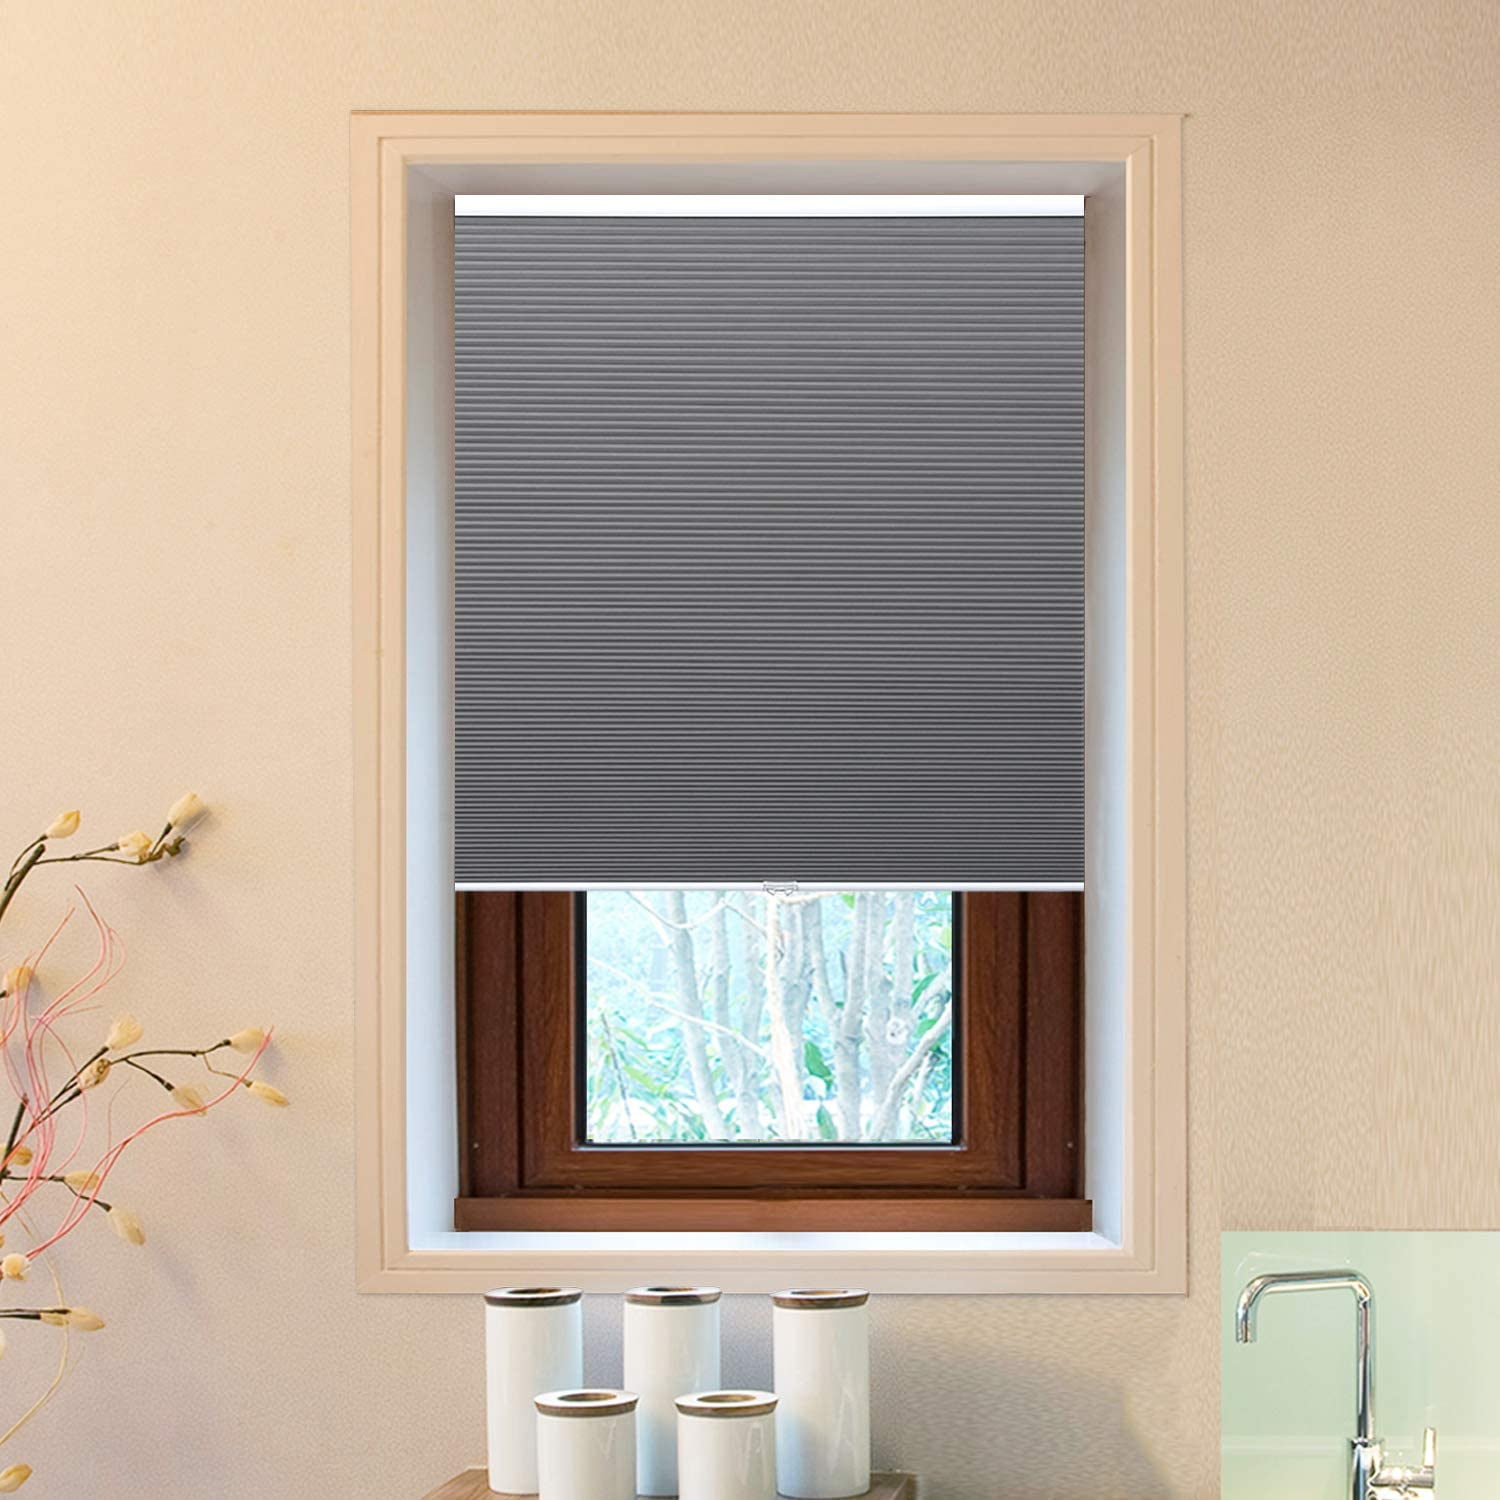 "Allesin Blackout Cordless Window Shades Cellular Honeycomb Shades Grey 29"" W x 64"" H Room Darkening Pleated Blinds for Windows"